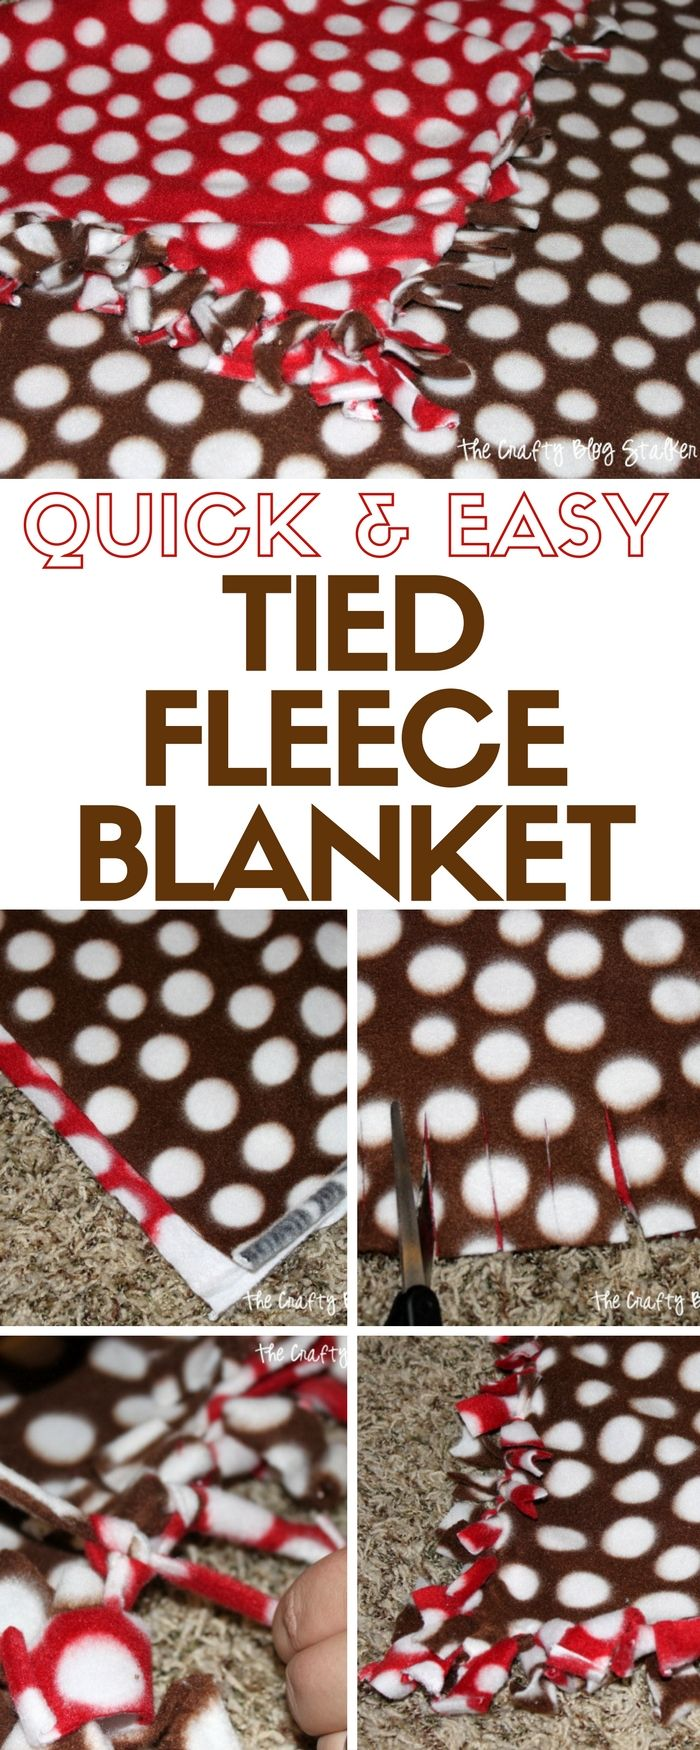 Easy Tie Dye Tips And Step By Step Instructions: 25+ Best Ideas About Fleece Tie Blankets On Pinterest